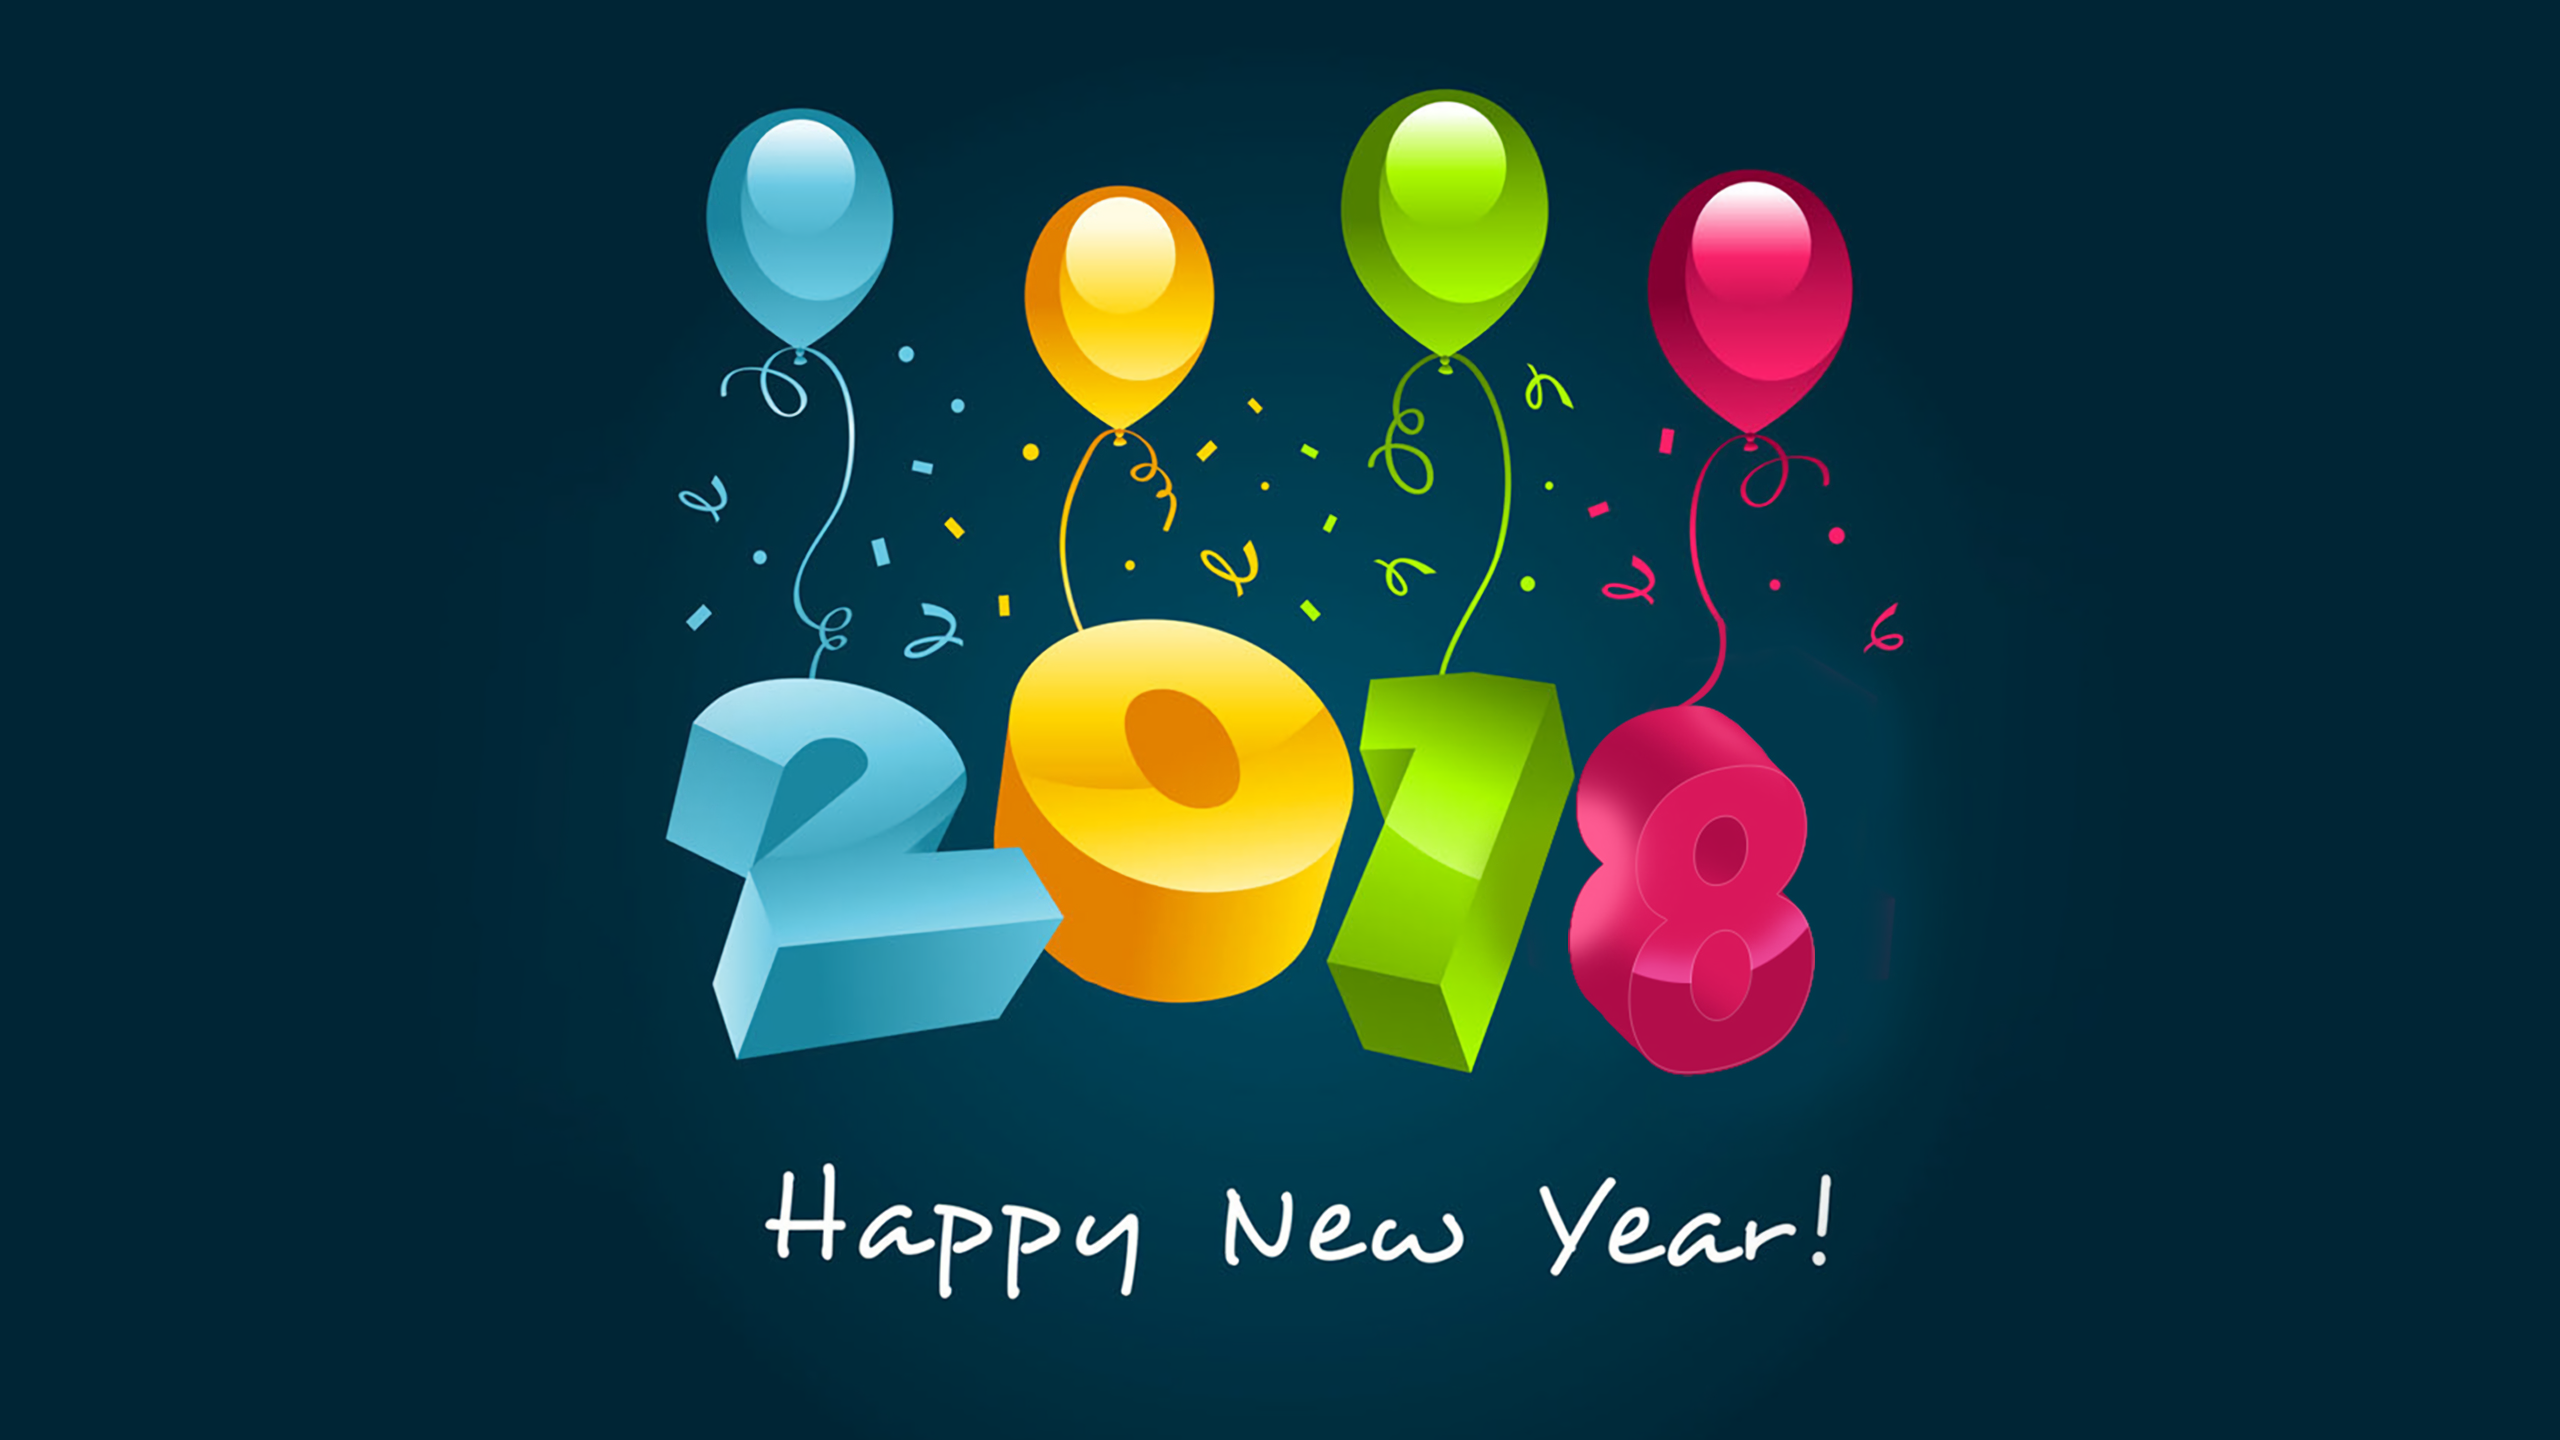 new year 2018 wallpapers id887341